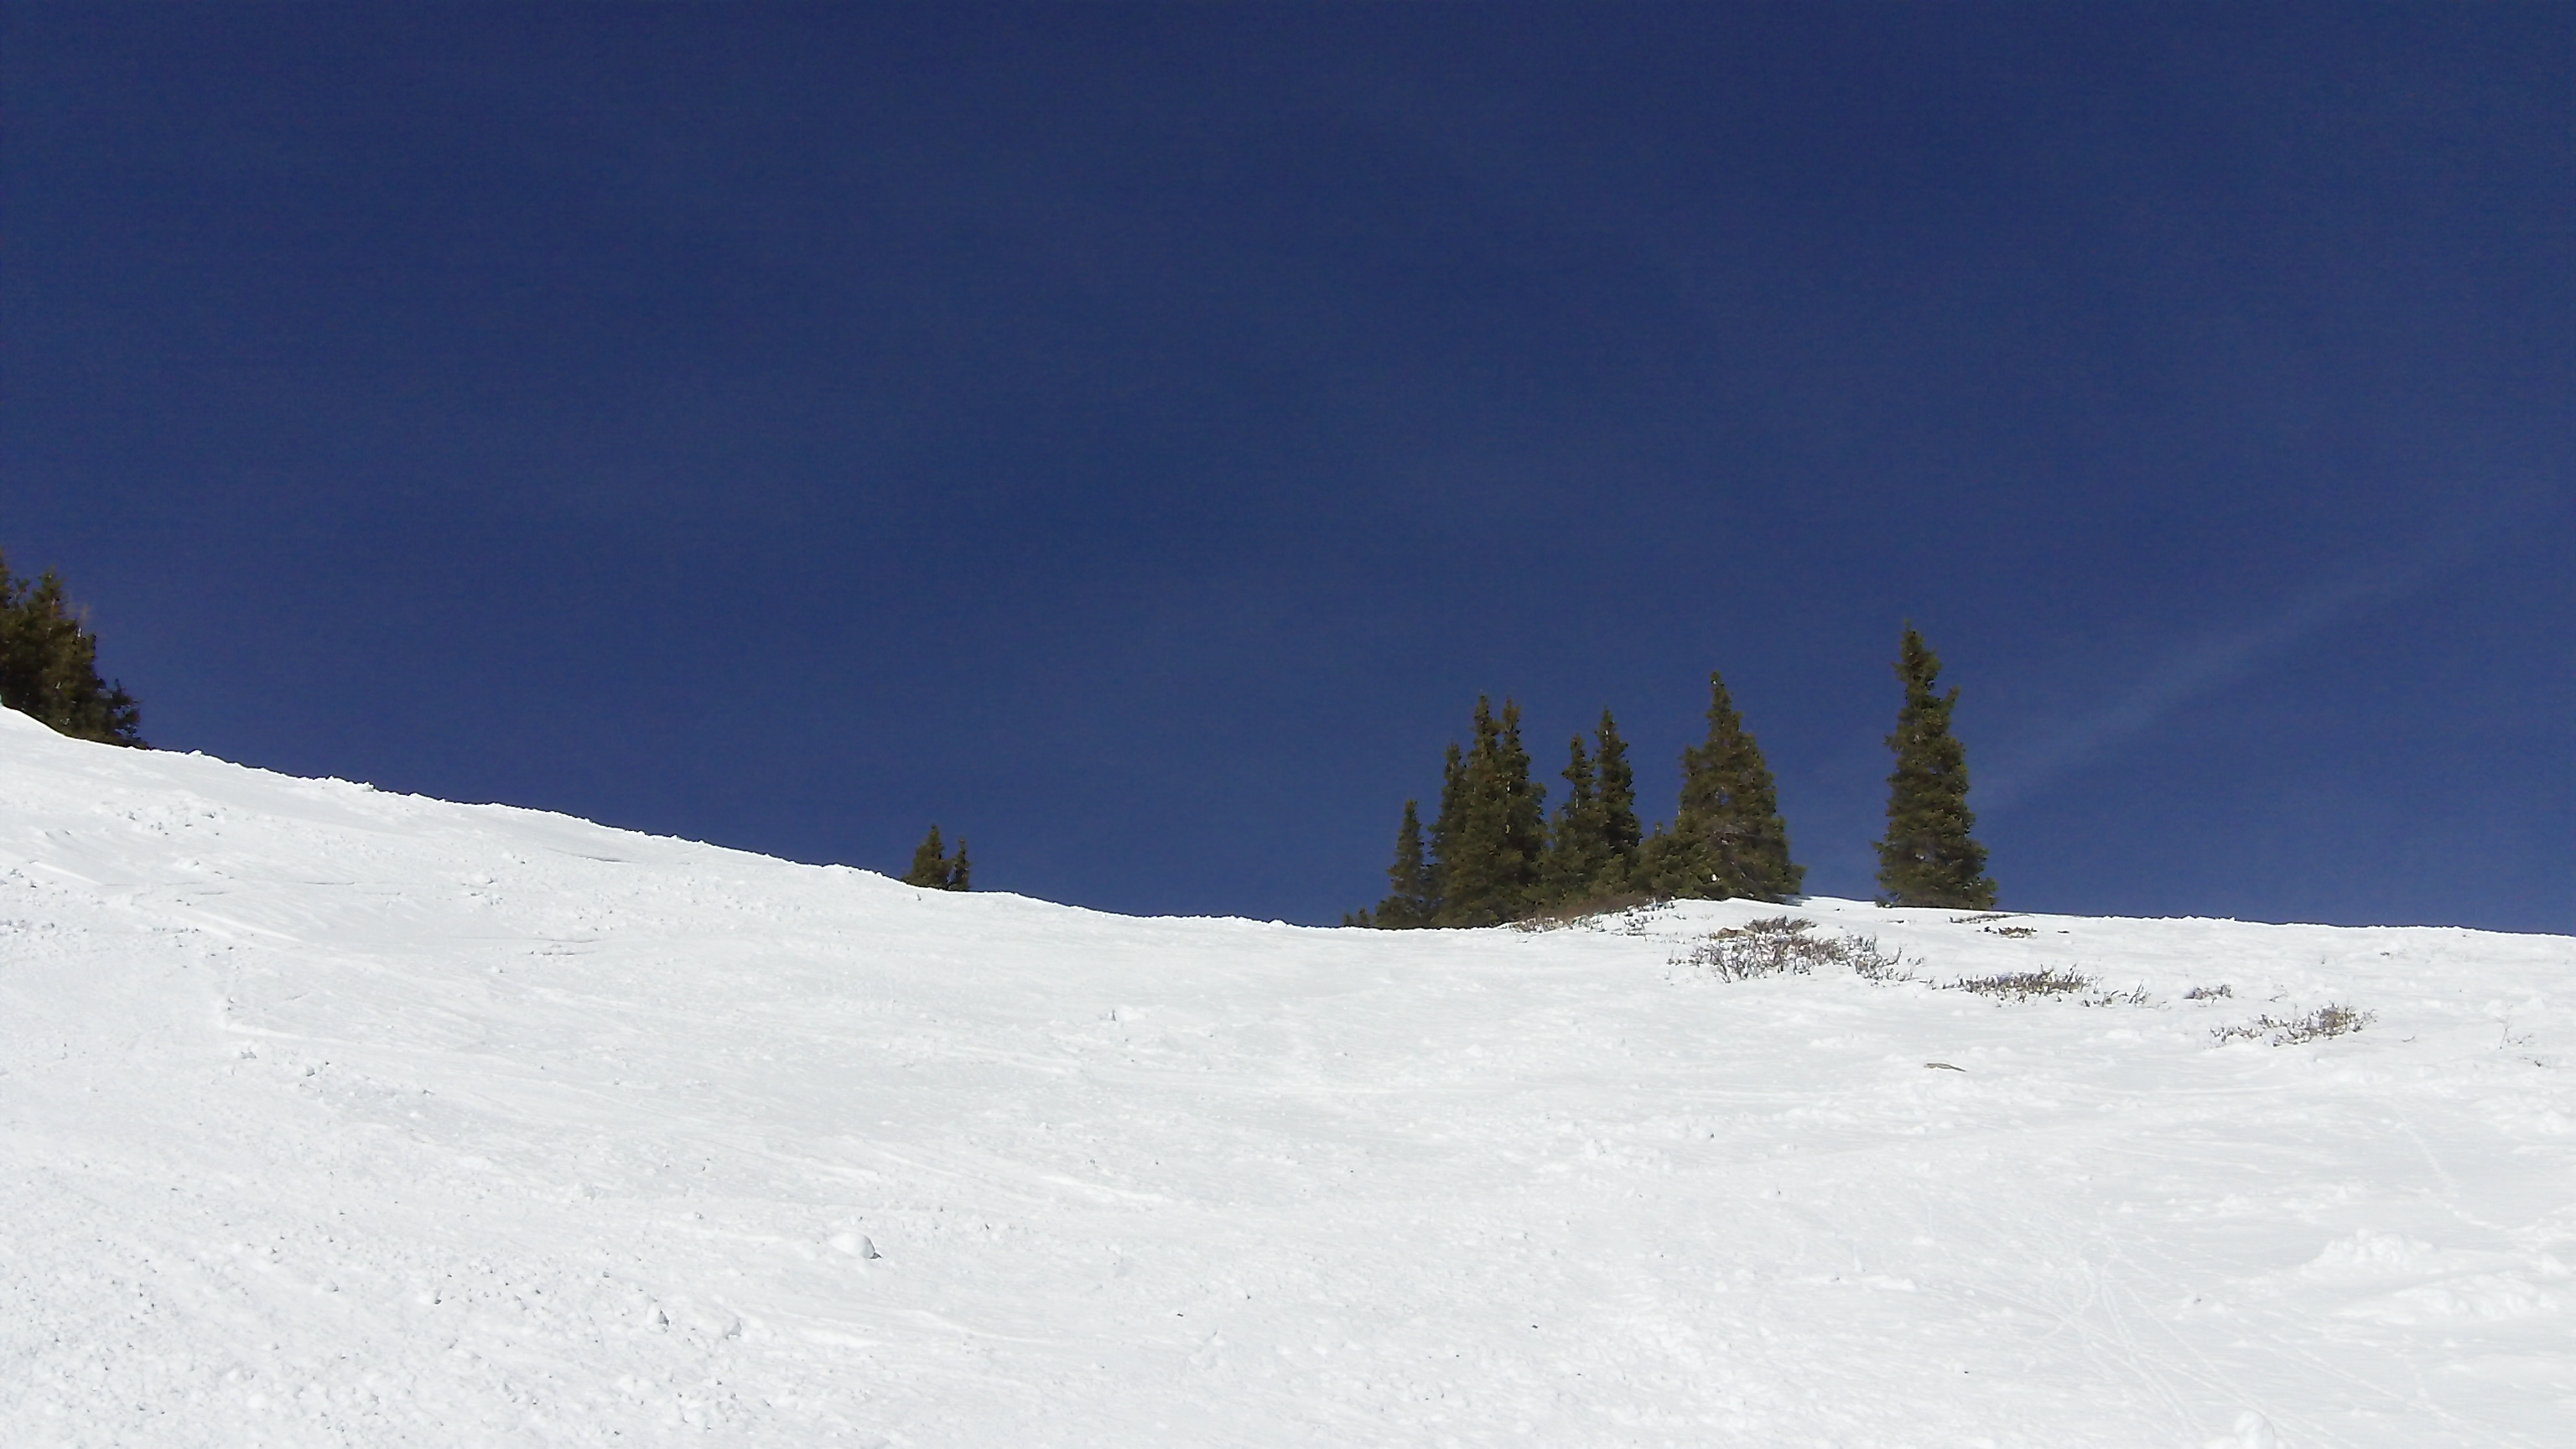 Looking up North Chutes again